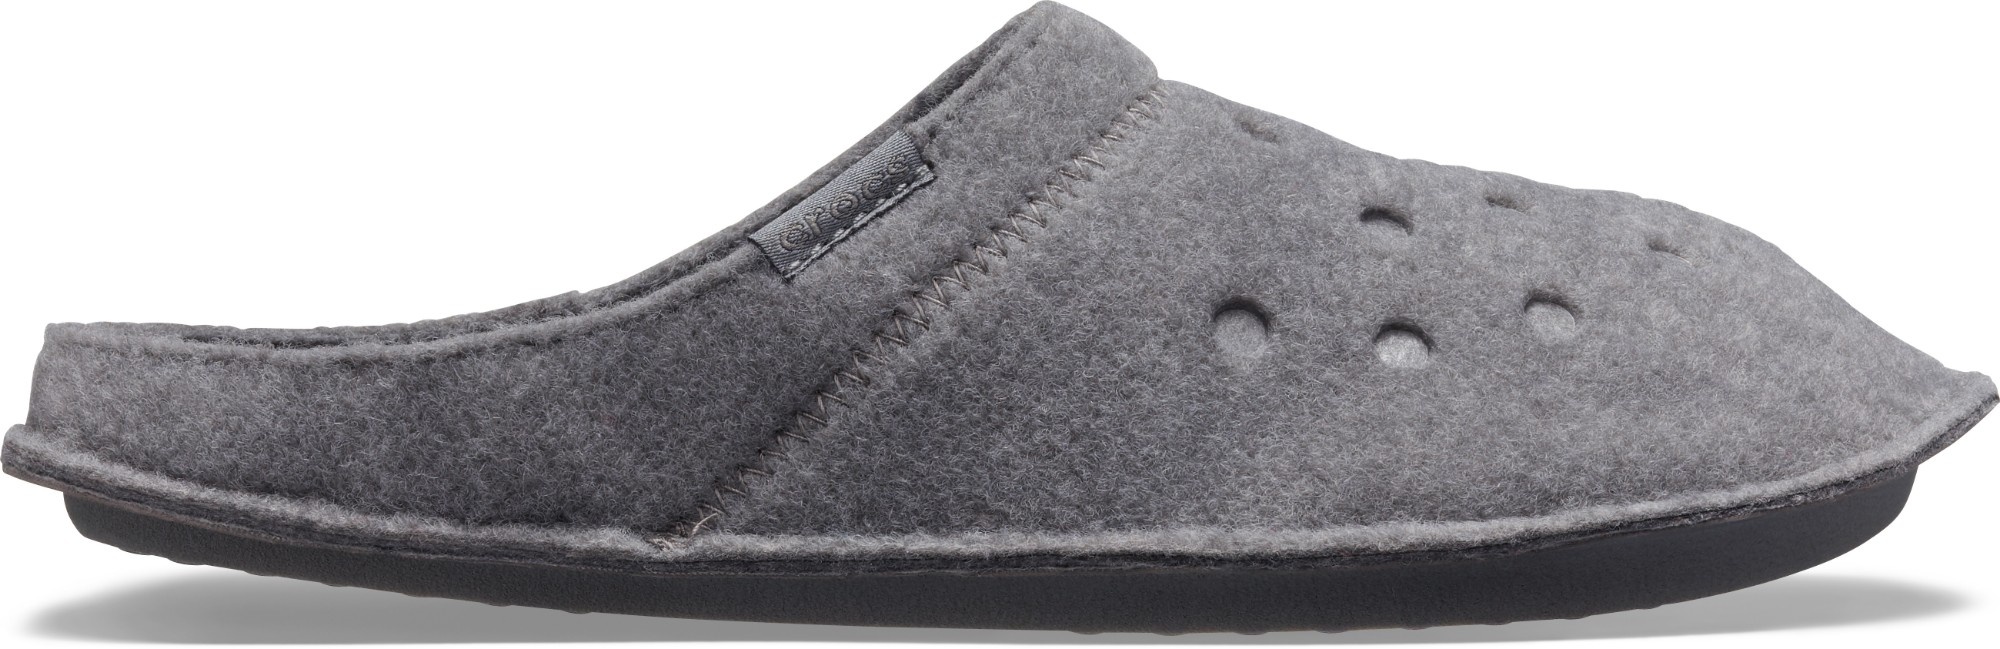 Crocs™ Classic Slipper Charcoal/Charcoal 45,5